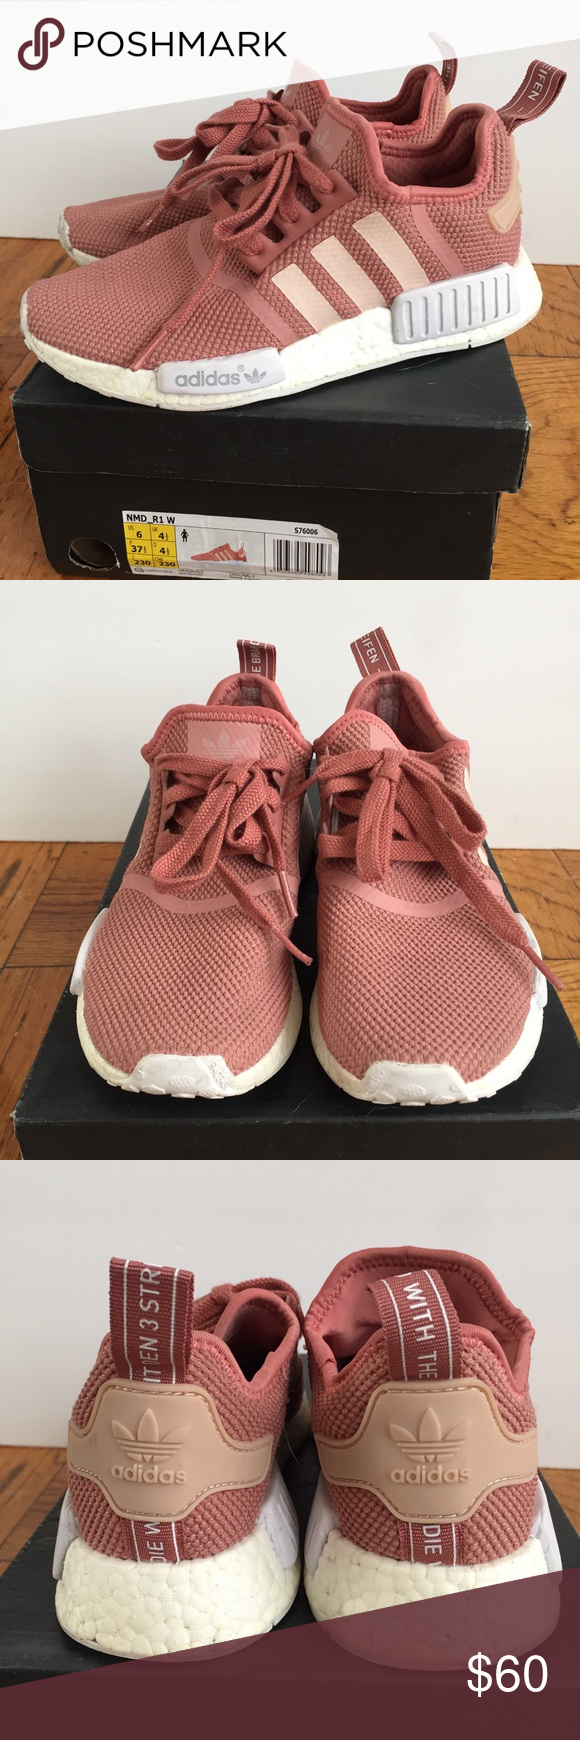 Adidas Boost NMD R1 Pink mi Posh picks Pinterest adidas Boost